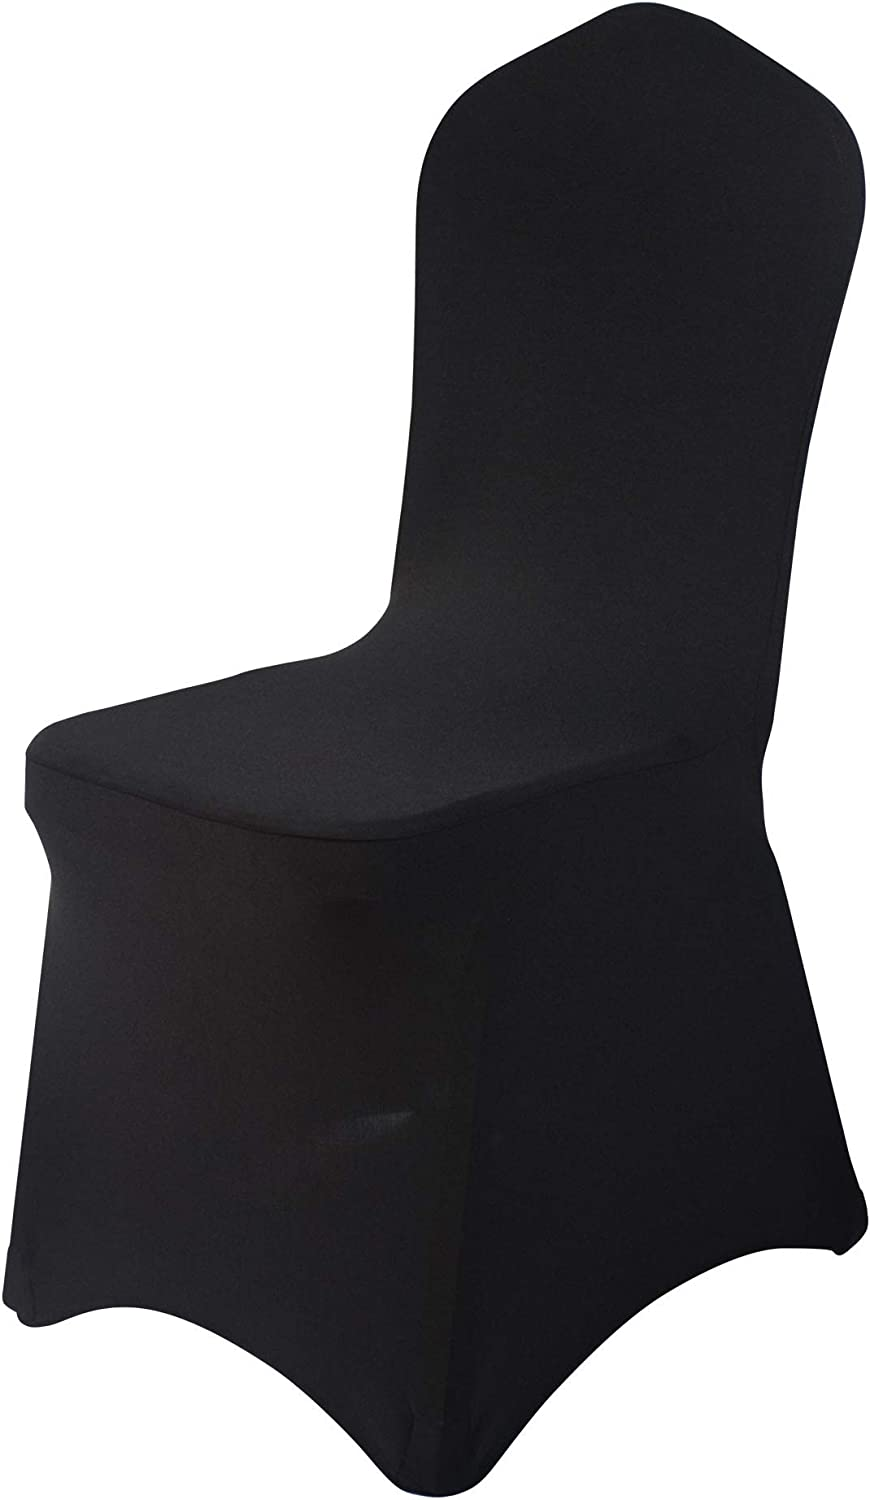 Gelozed 20 PCS Black Spandex Dining Living Covers 25% OFF Directly managed store Room for Chair